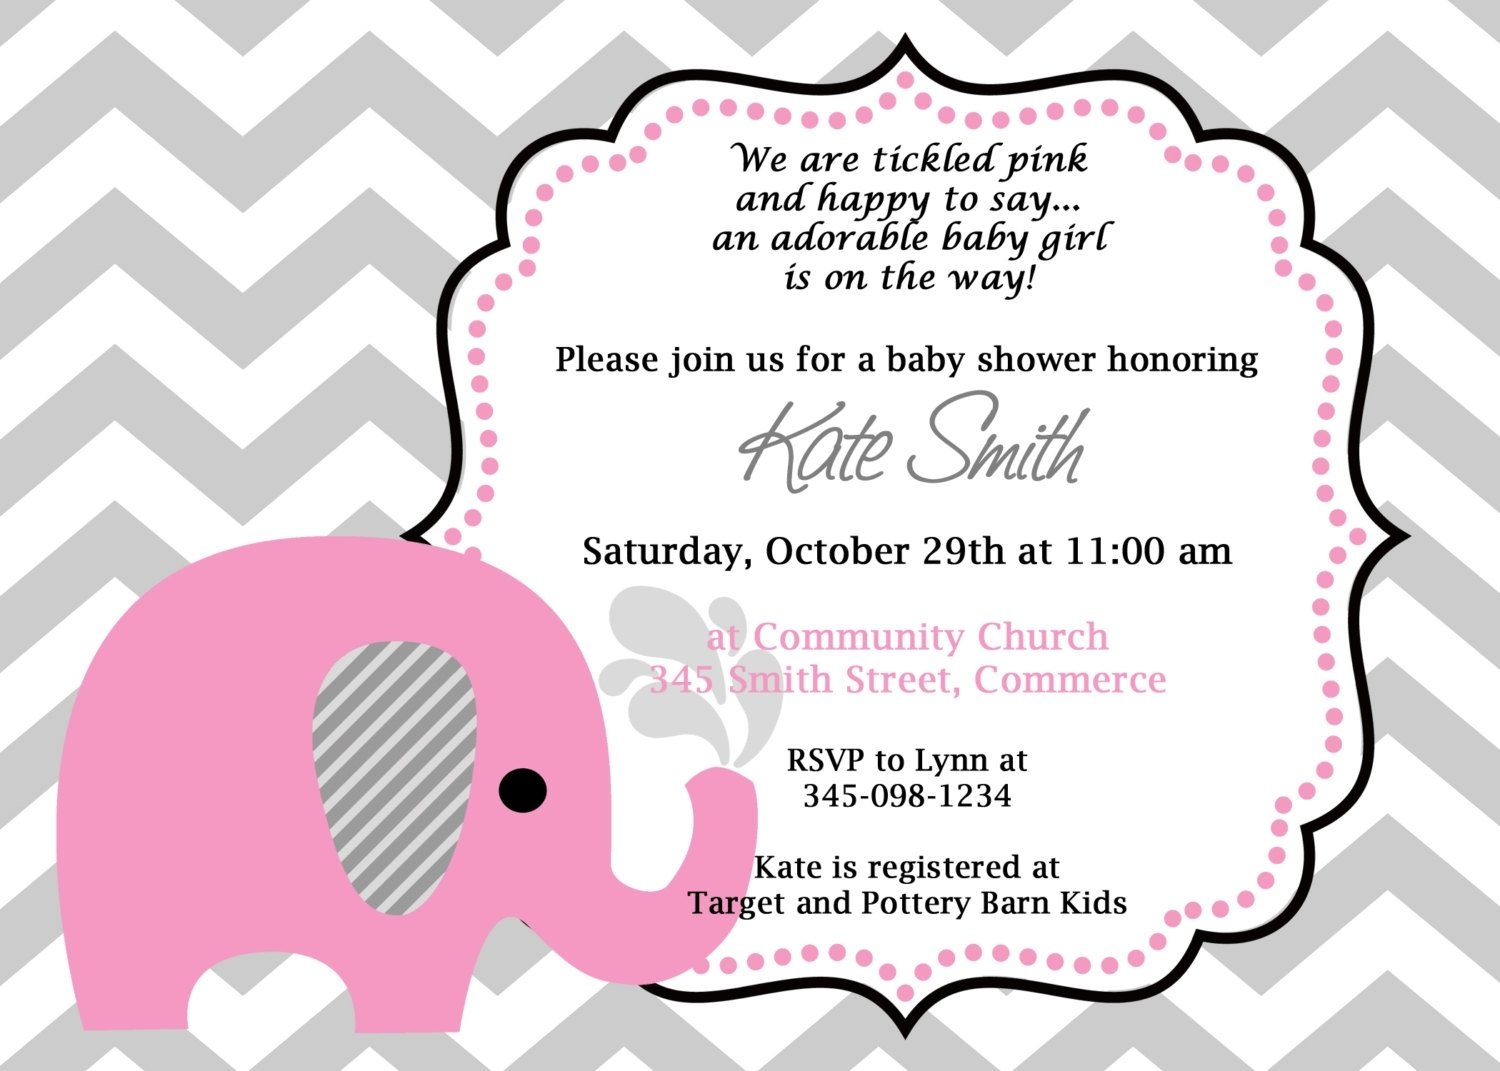 cute baby shower invitation ideas • baby showers ideas